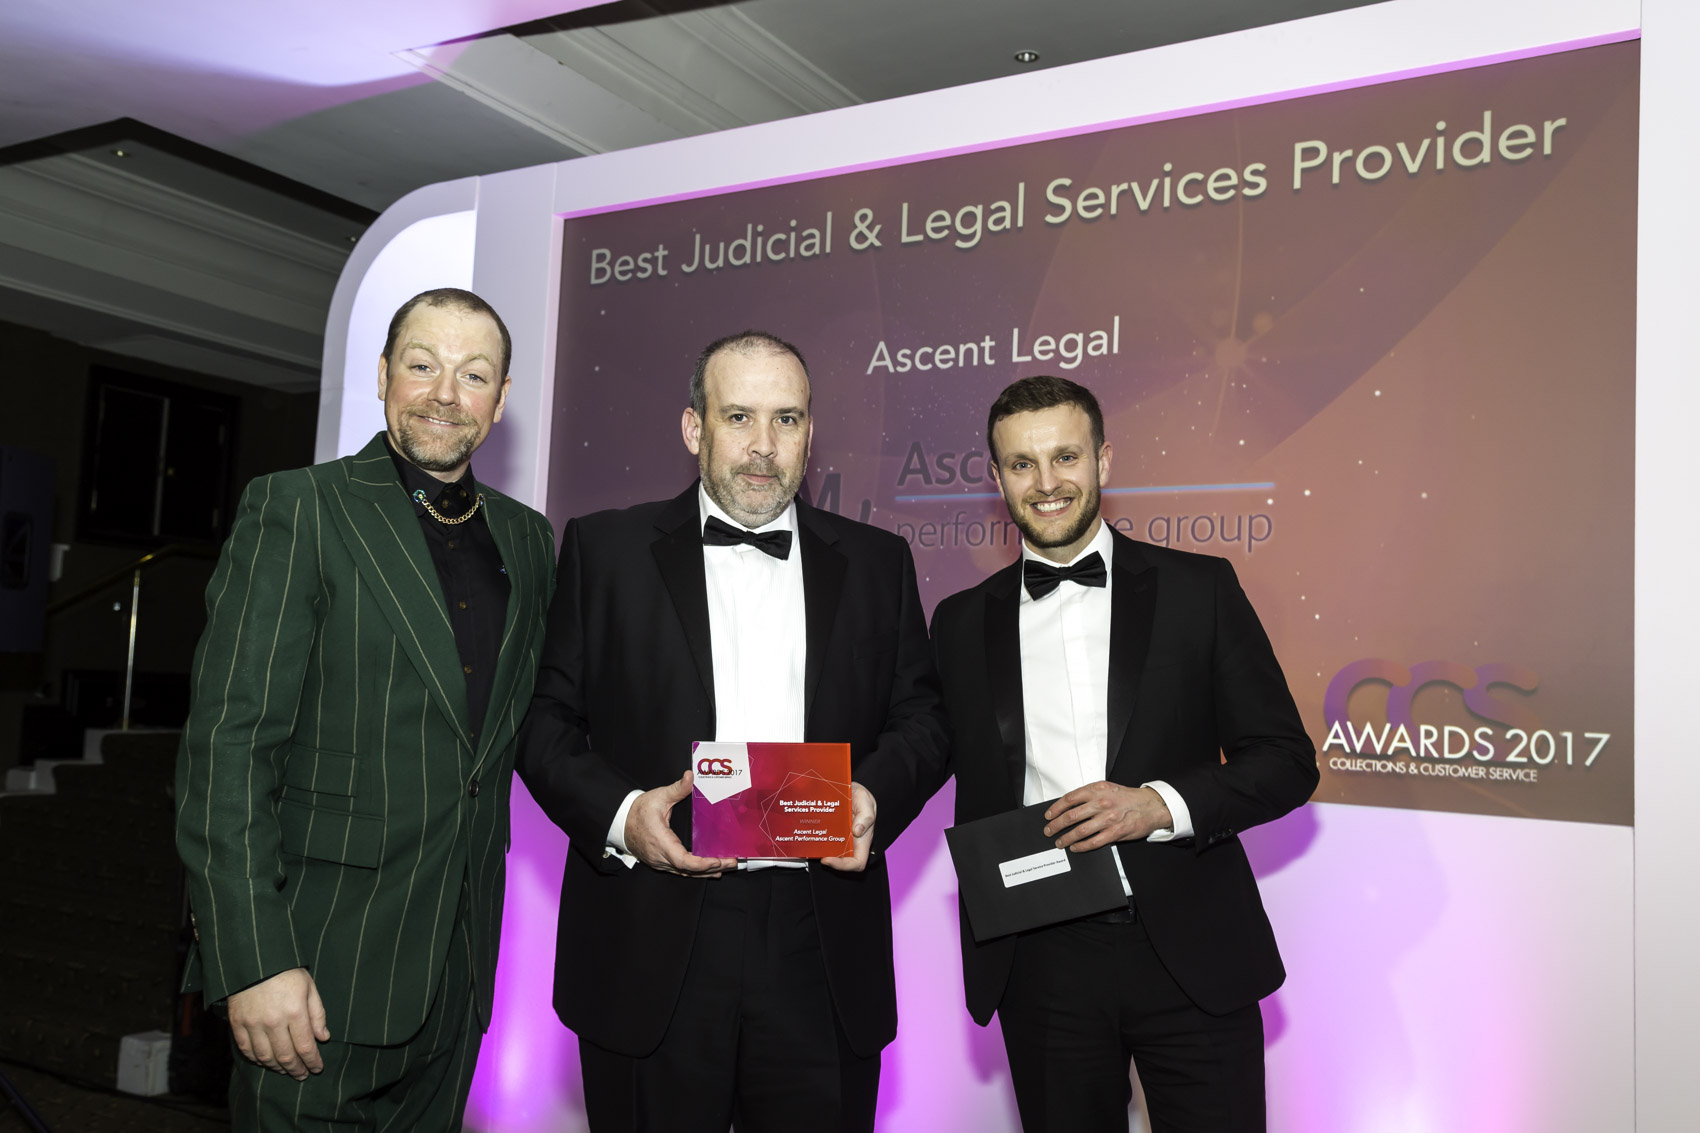 Winners CCS 2017 - 7 Best Judicial & Legal Services Provider